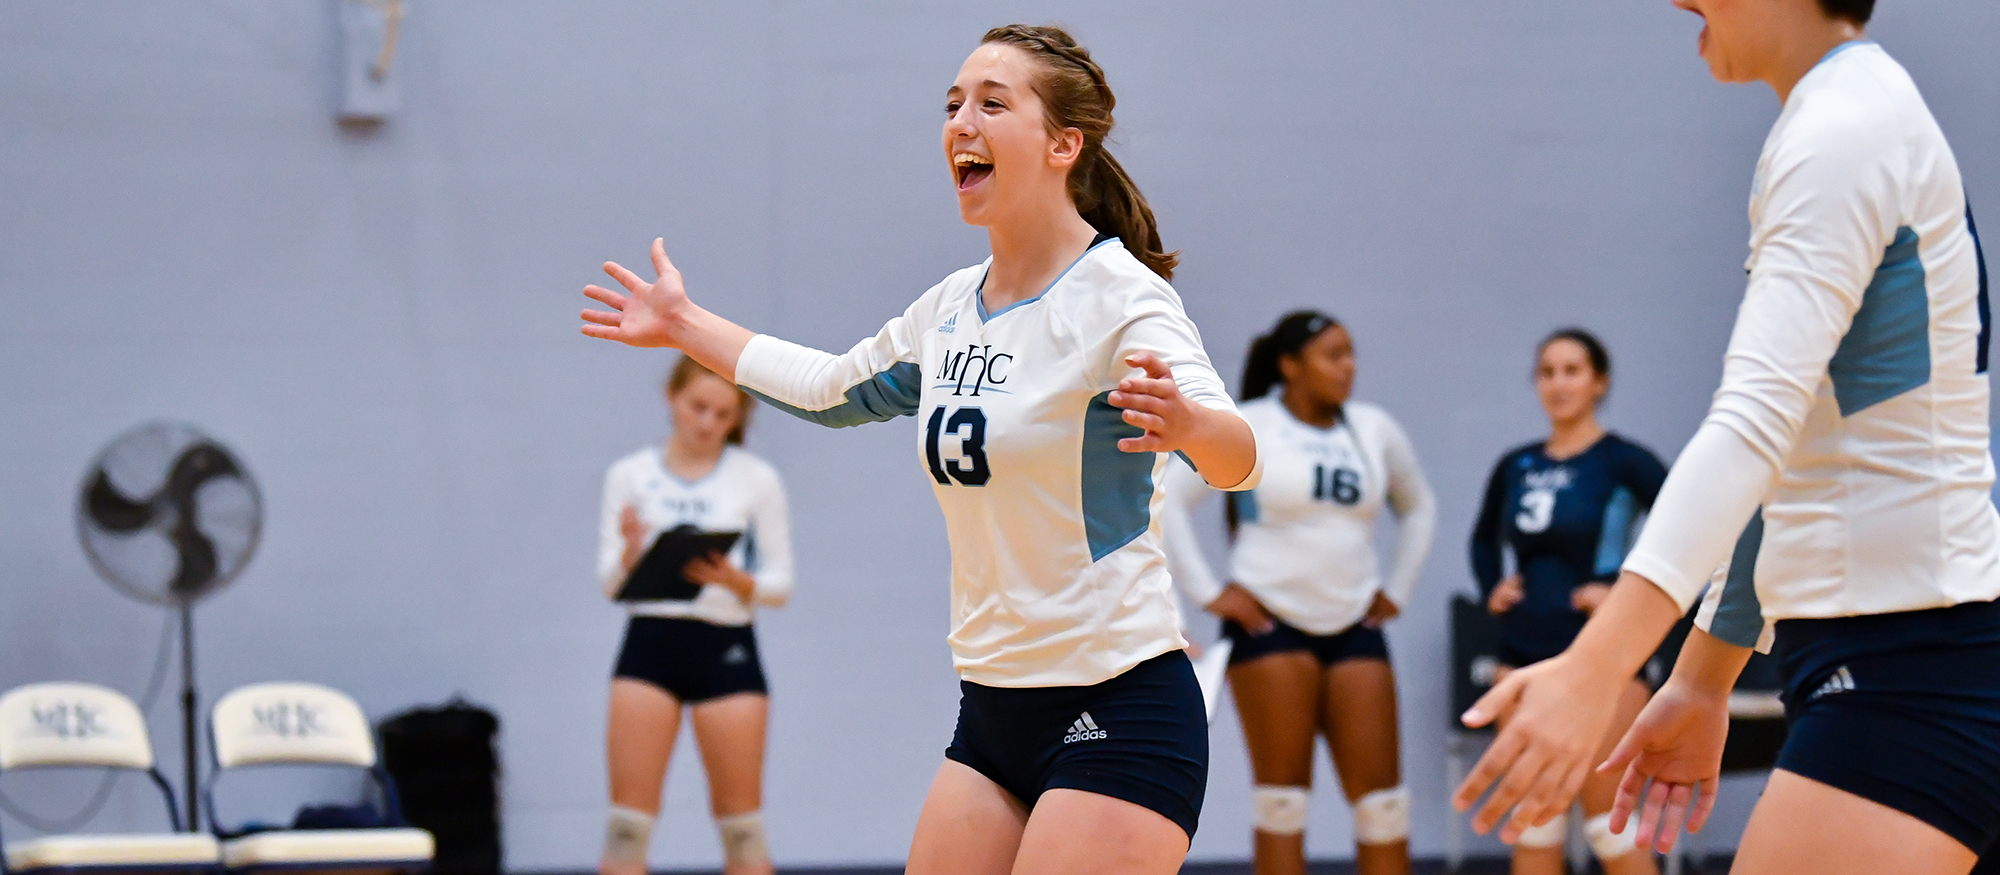 Bishop and Simon Lead Volleyball Past Husson; Lyons Fall to MIT in NEWMAC Play